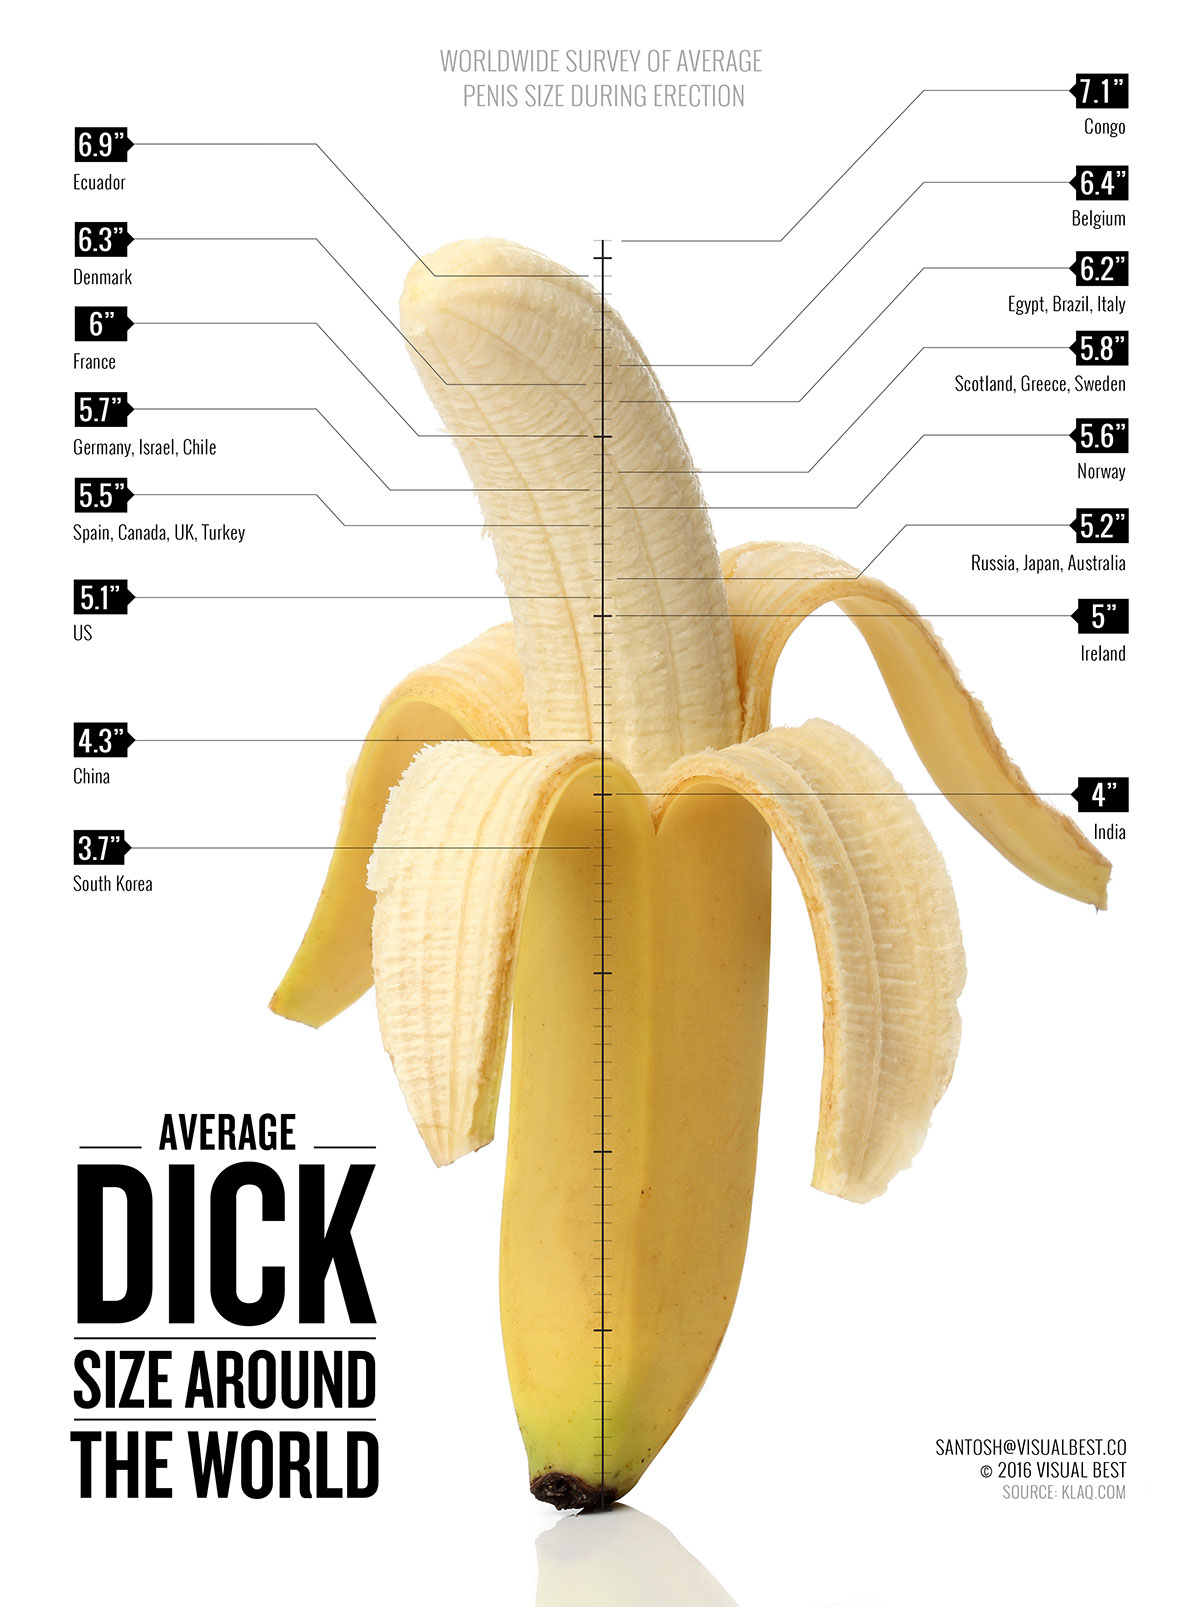 World Penis Map Reveals The Average Penis Size Around The World